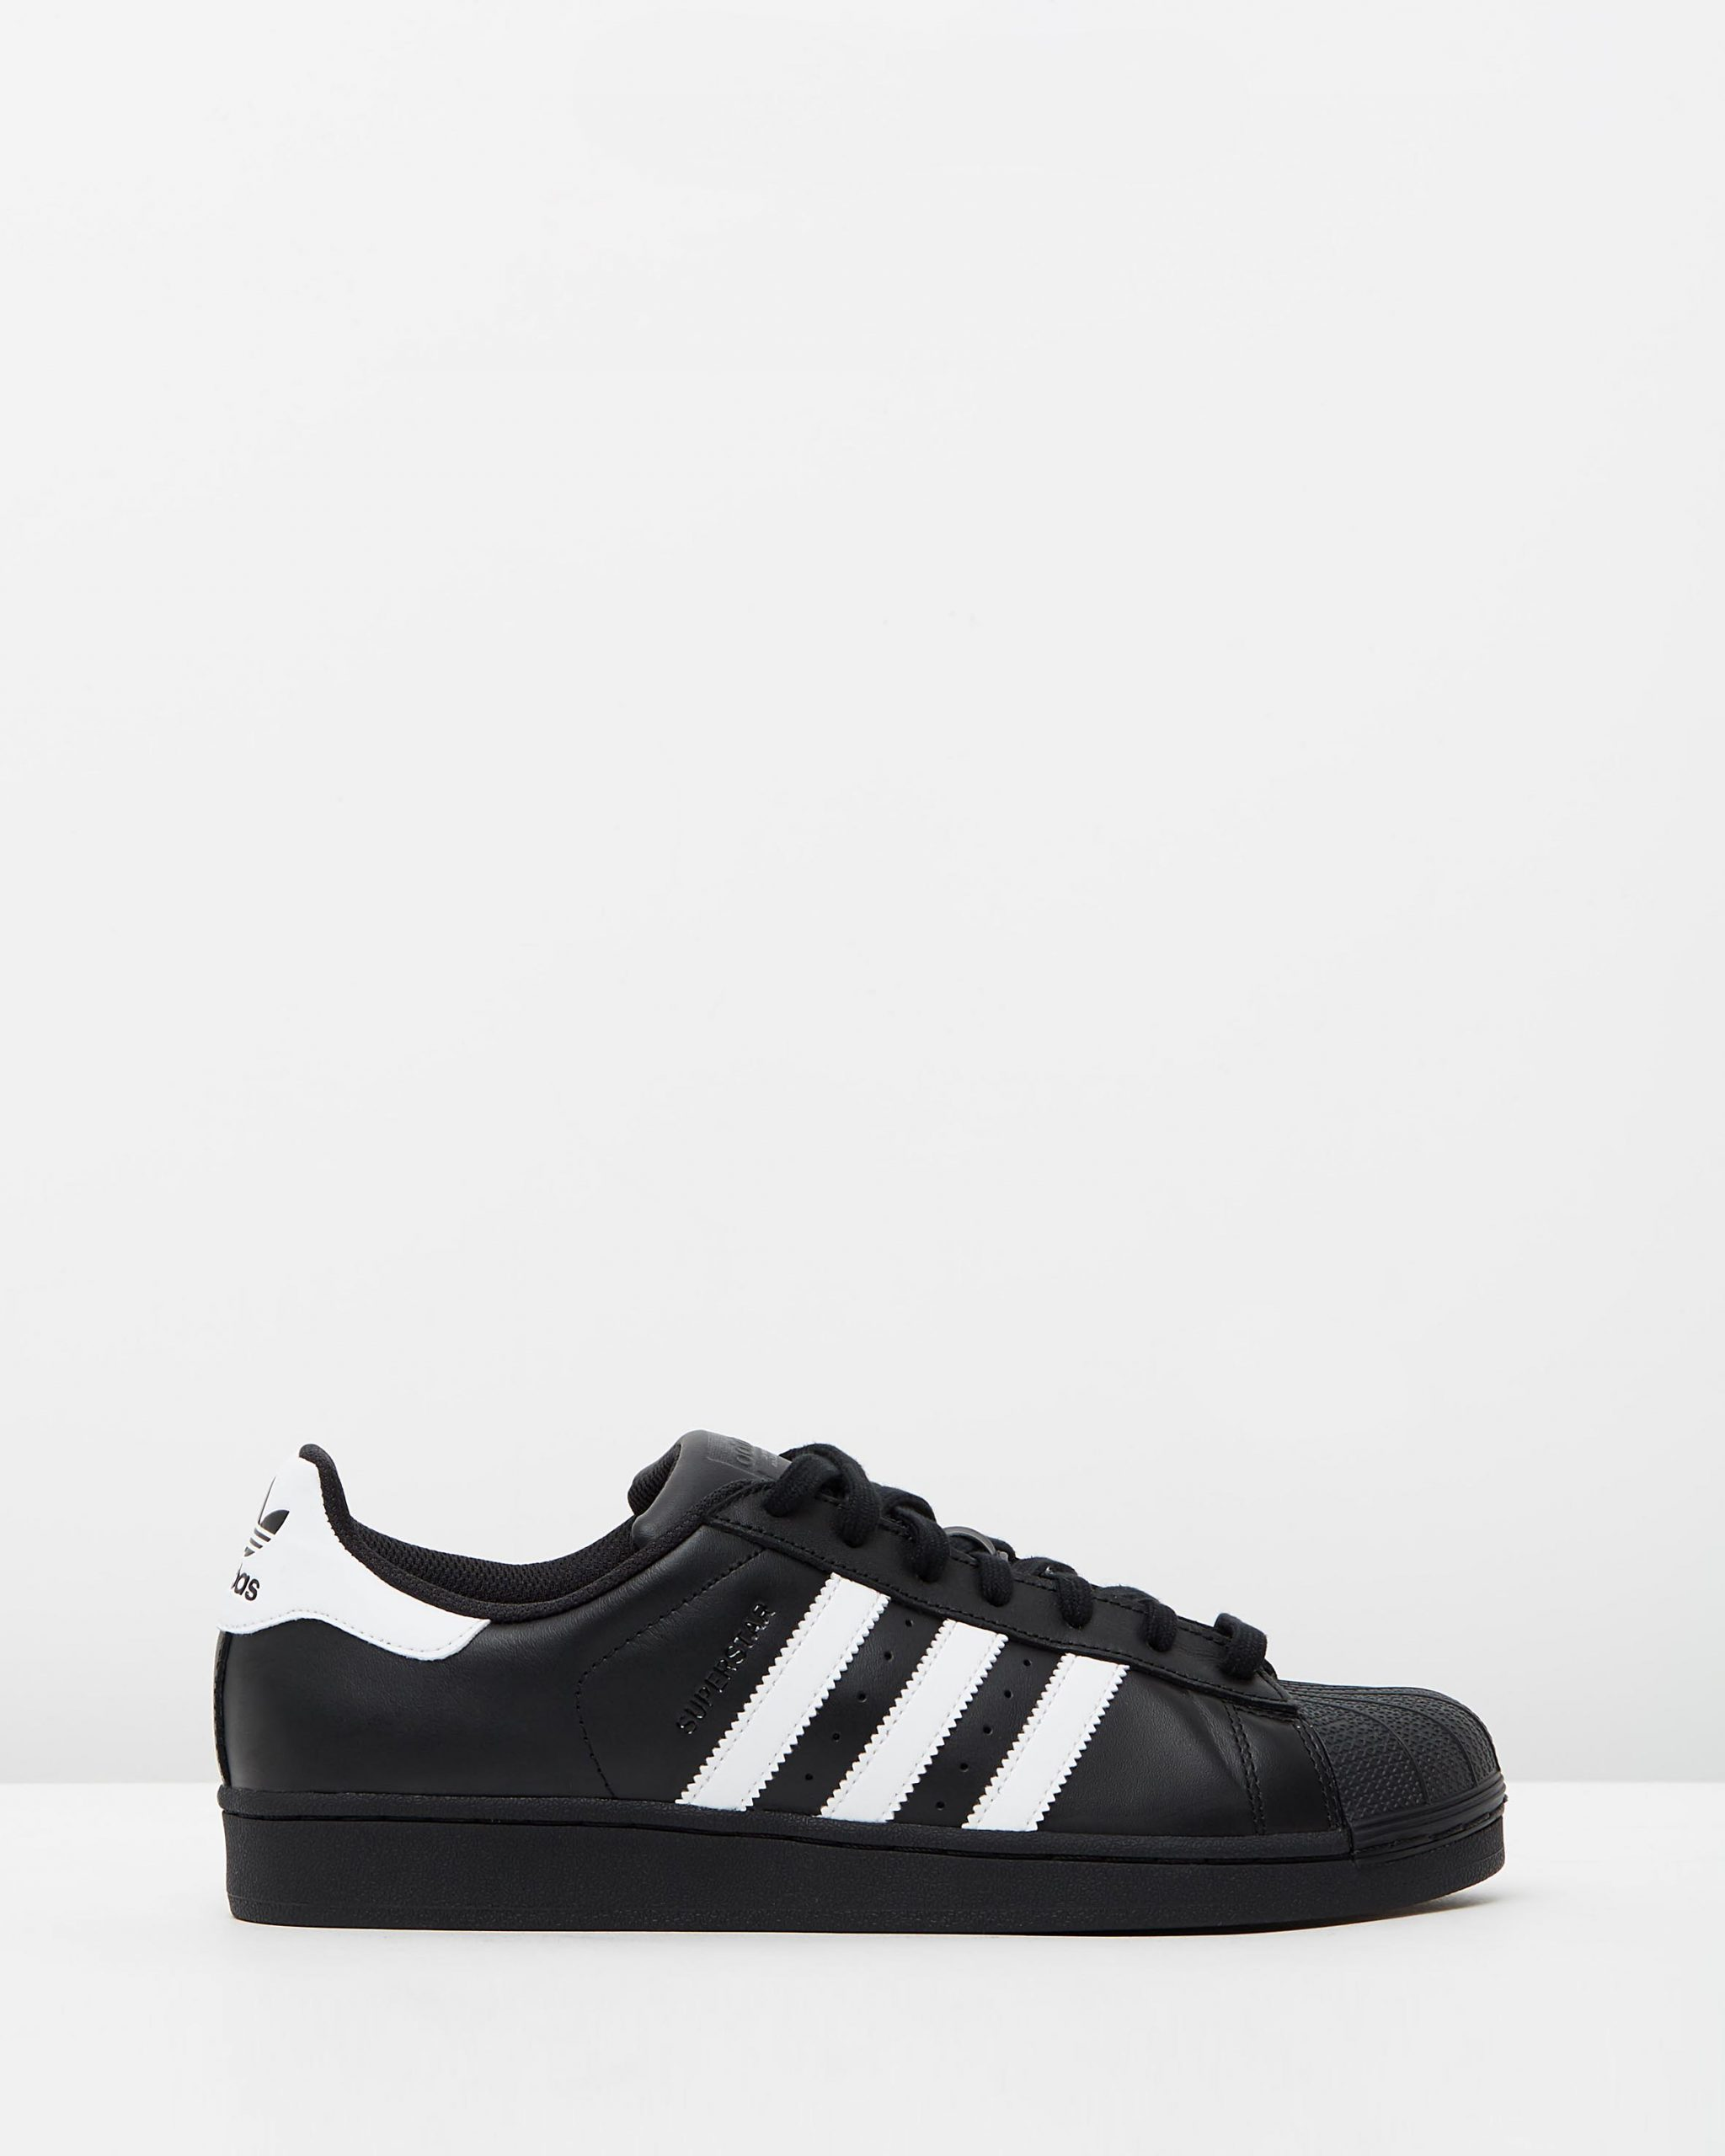 Adidas Originals Women's Superstar Black & White